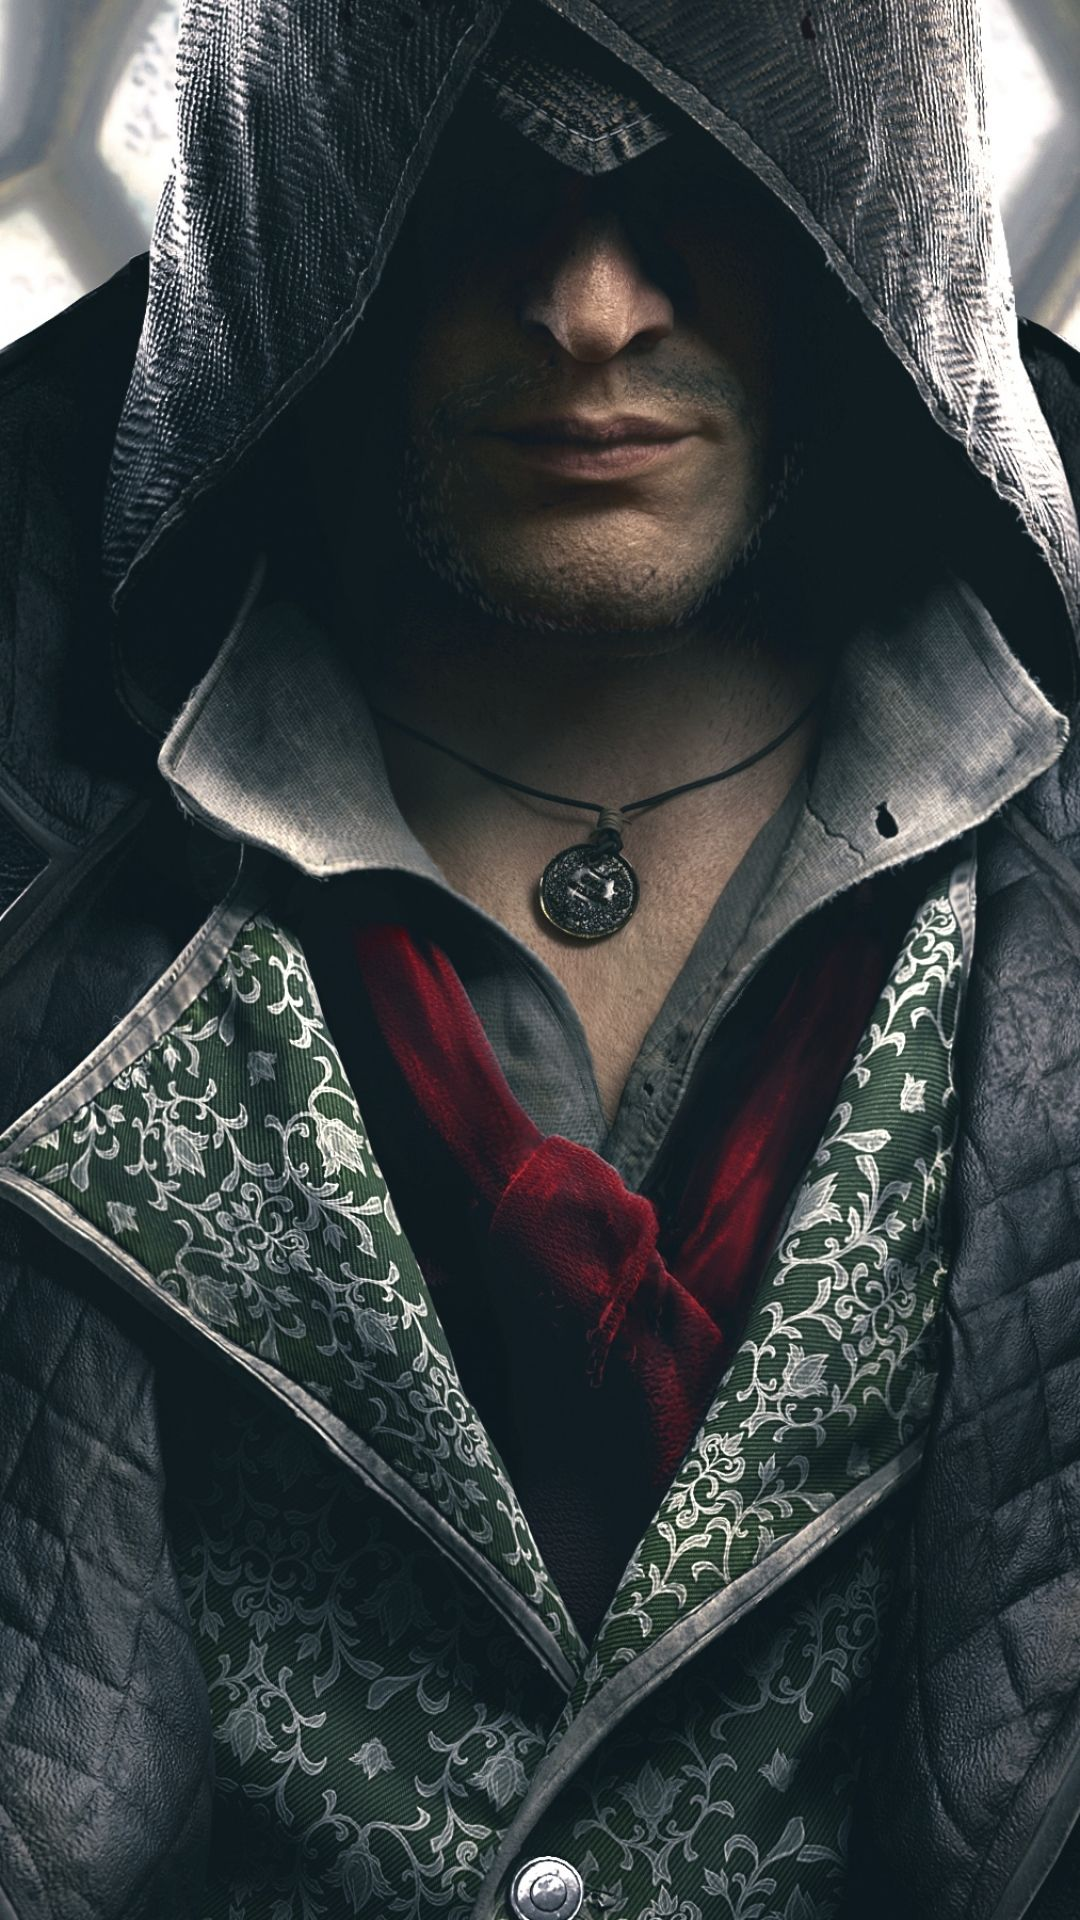 Great 7 Assassins Creed Wallpapers For Your Android Or Iphone Wallpapers Android Iphone Wallpaper Assassins Creed Syndicate Assasins Creed Assassins Creed